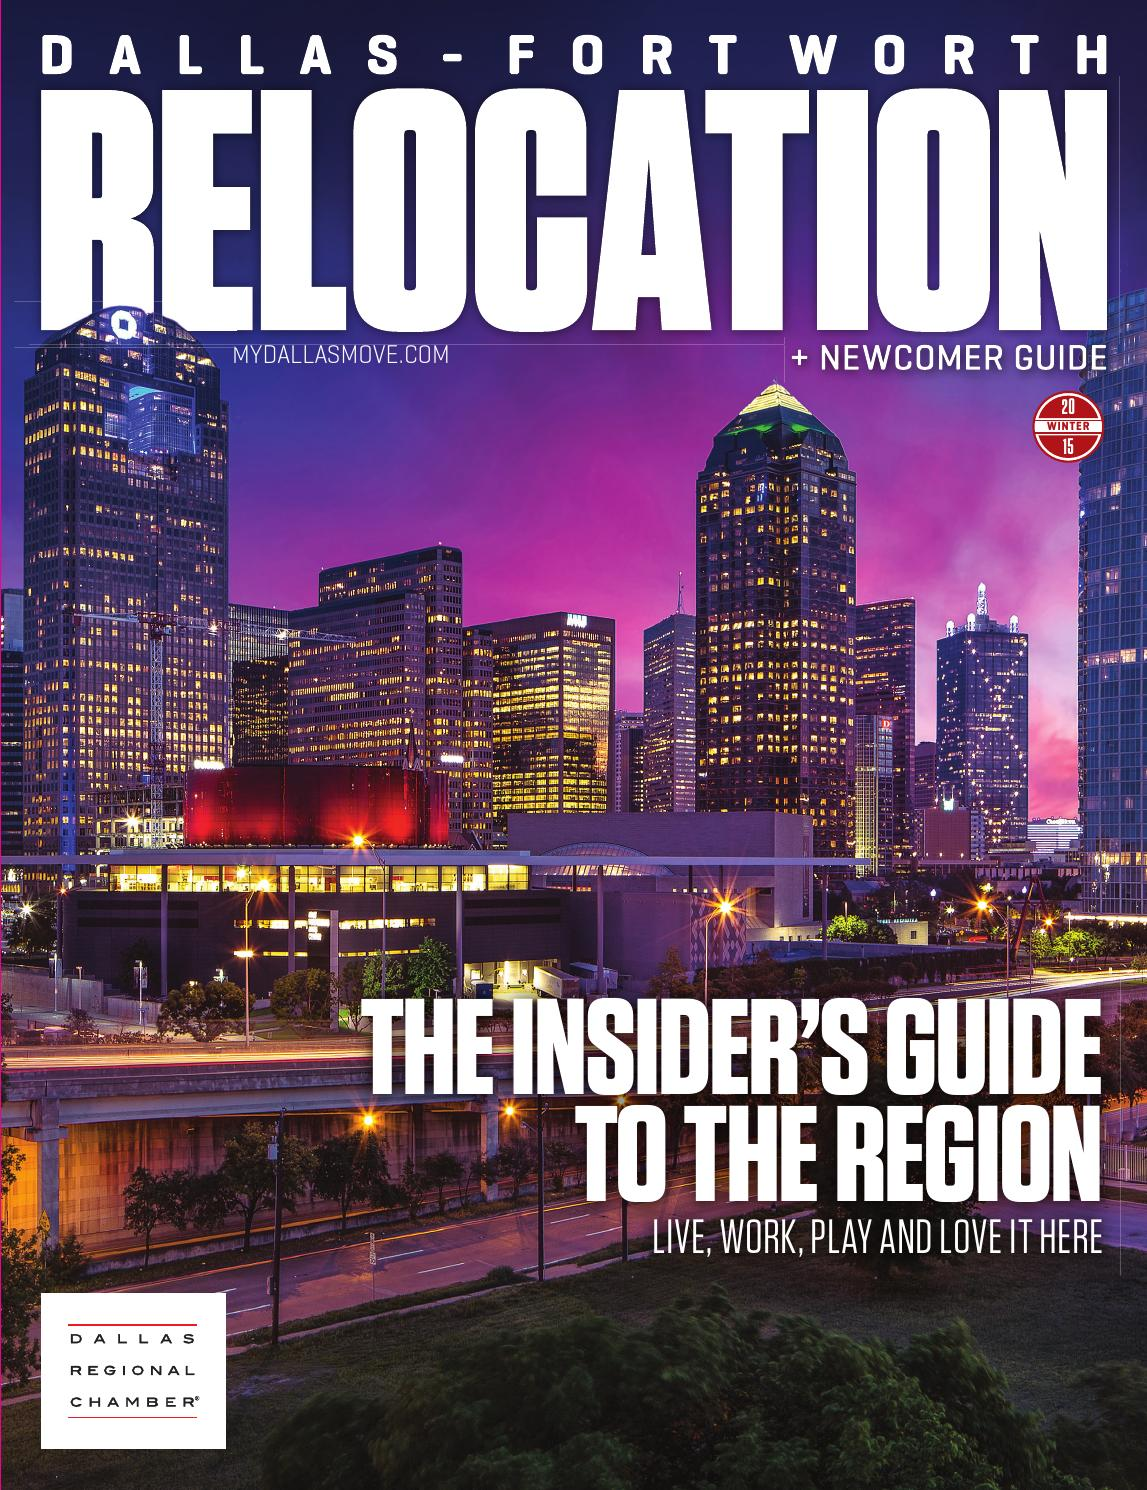 Dallas fort worth relocation newcomer guide winter 2015 by dallas regional chamber publications issuu